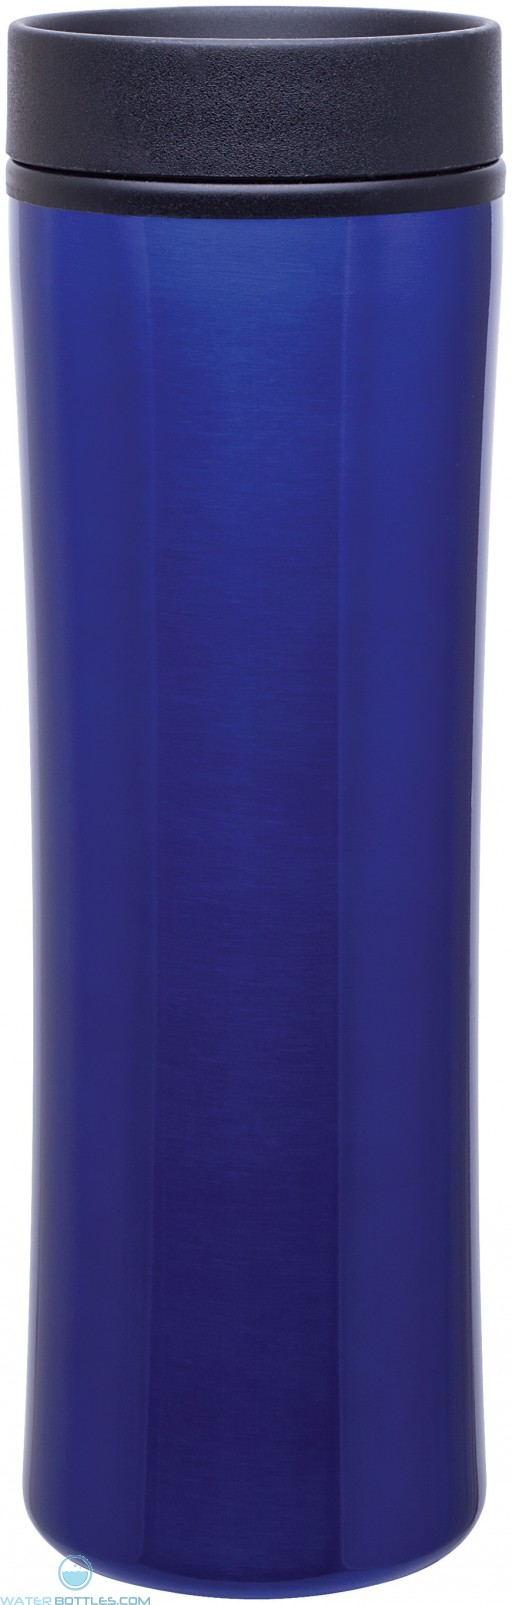 Foam Insulated Cyrus Tumblers | 16 oz - Blue